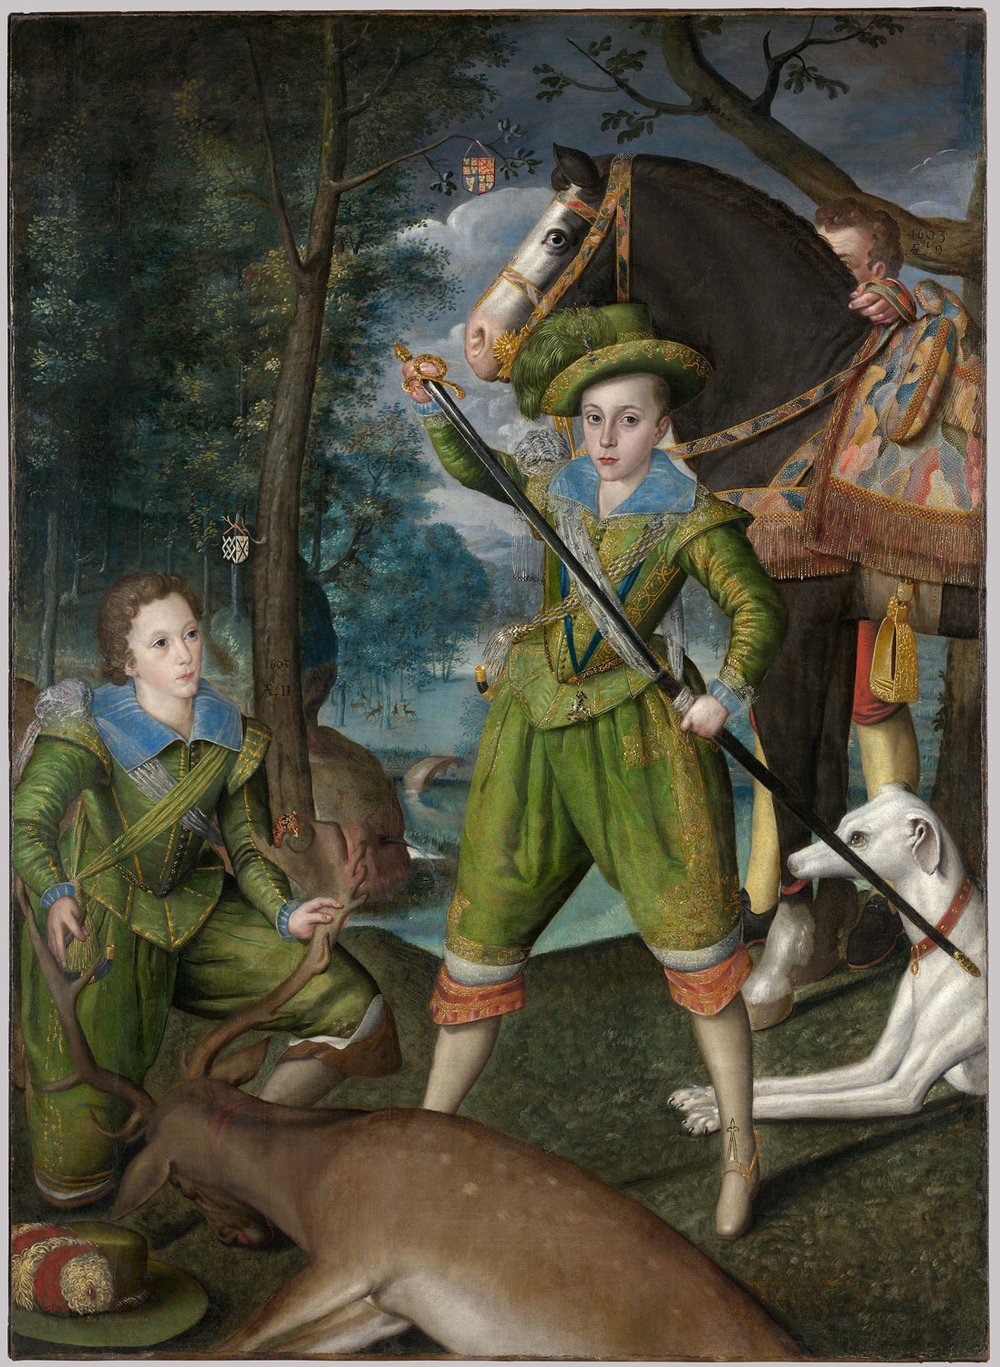 Robert Peake the Elder, 'Henry Frederick (1594-1612), Prince of Wales, with Sir John Harrington (1592-1614), in the Hunting Field' (1603), http://www.metmuseum.org/art/collection/search/437272. I am grateful to the New York Metropolitan Museum of Art for allowing me to reproduce this image in accordance with their Open Access for Scholarly Content Policy.